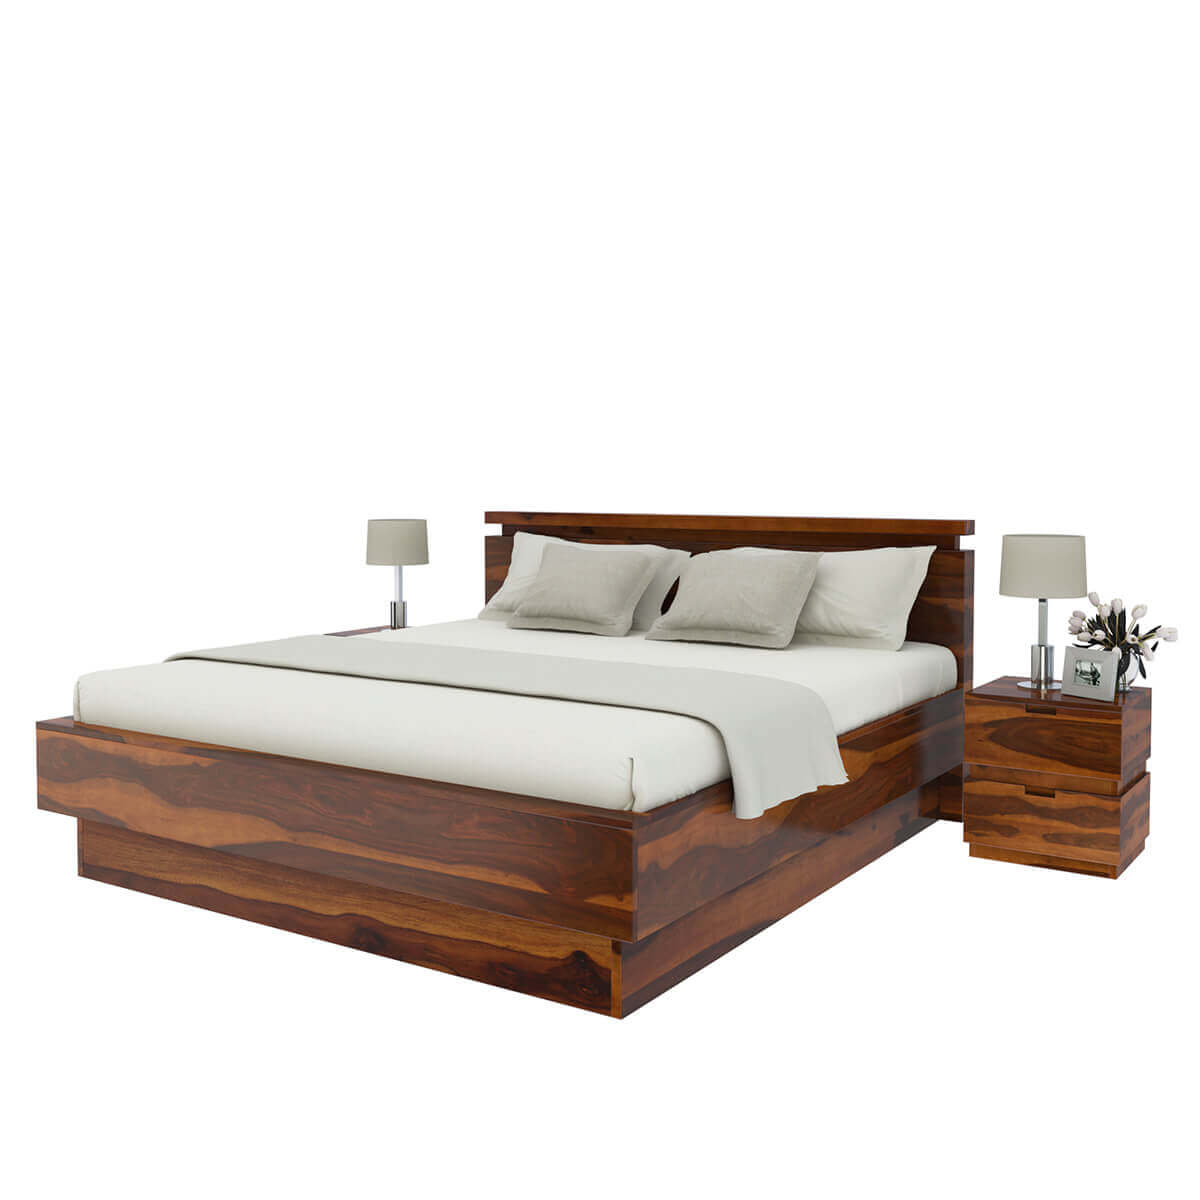 modern simplicity solid wood queen size platform bed. Black Bedroom Furniture Sets. Home Design Ideas